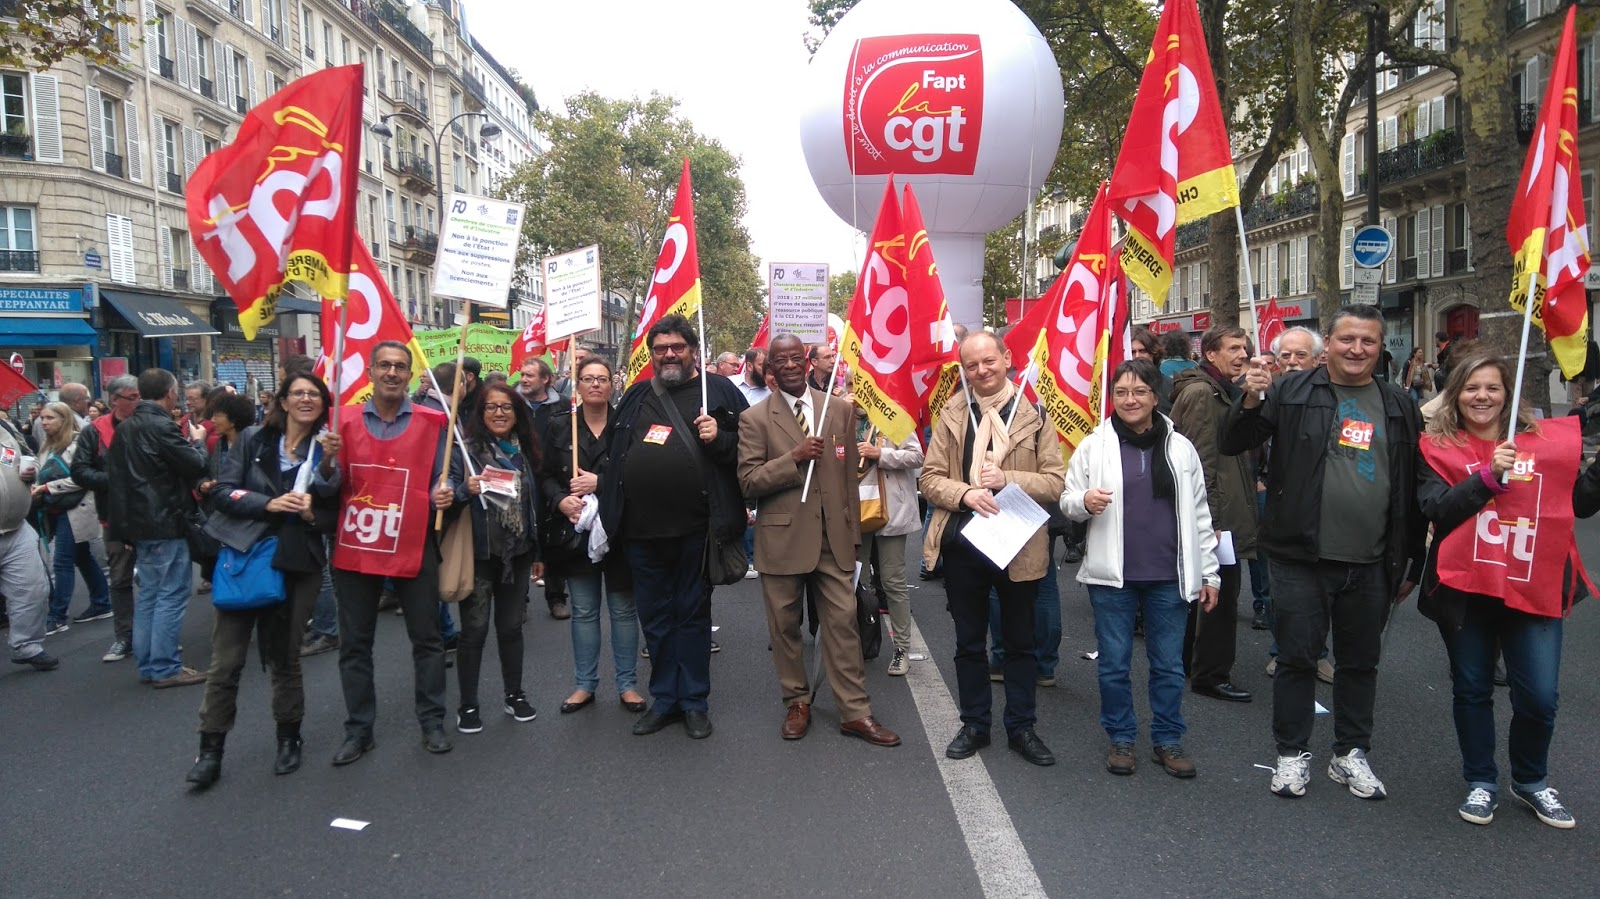 Chambre De Commerce Et D Industrie Paris Manifestation Du 10 Octobre 2017 Syndicat Cgt Cci Paris Idf